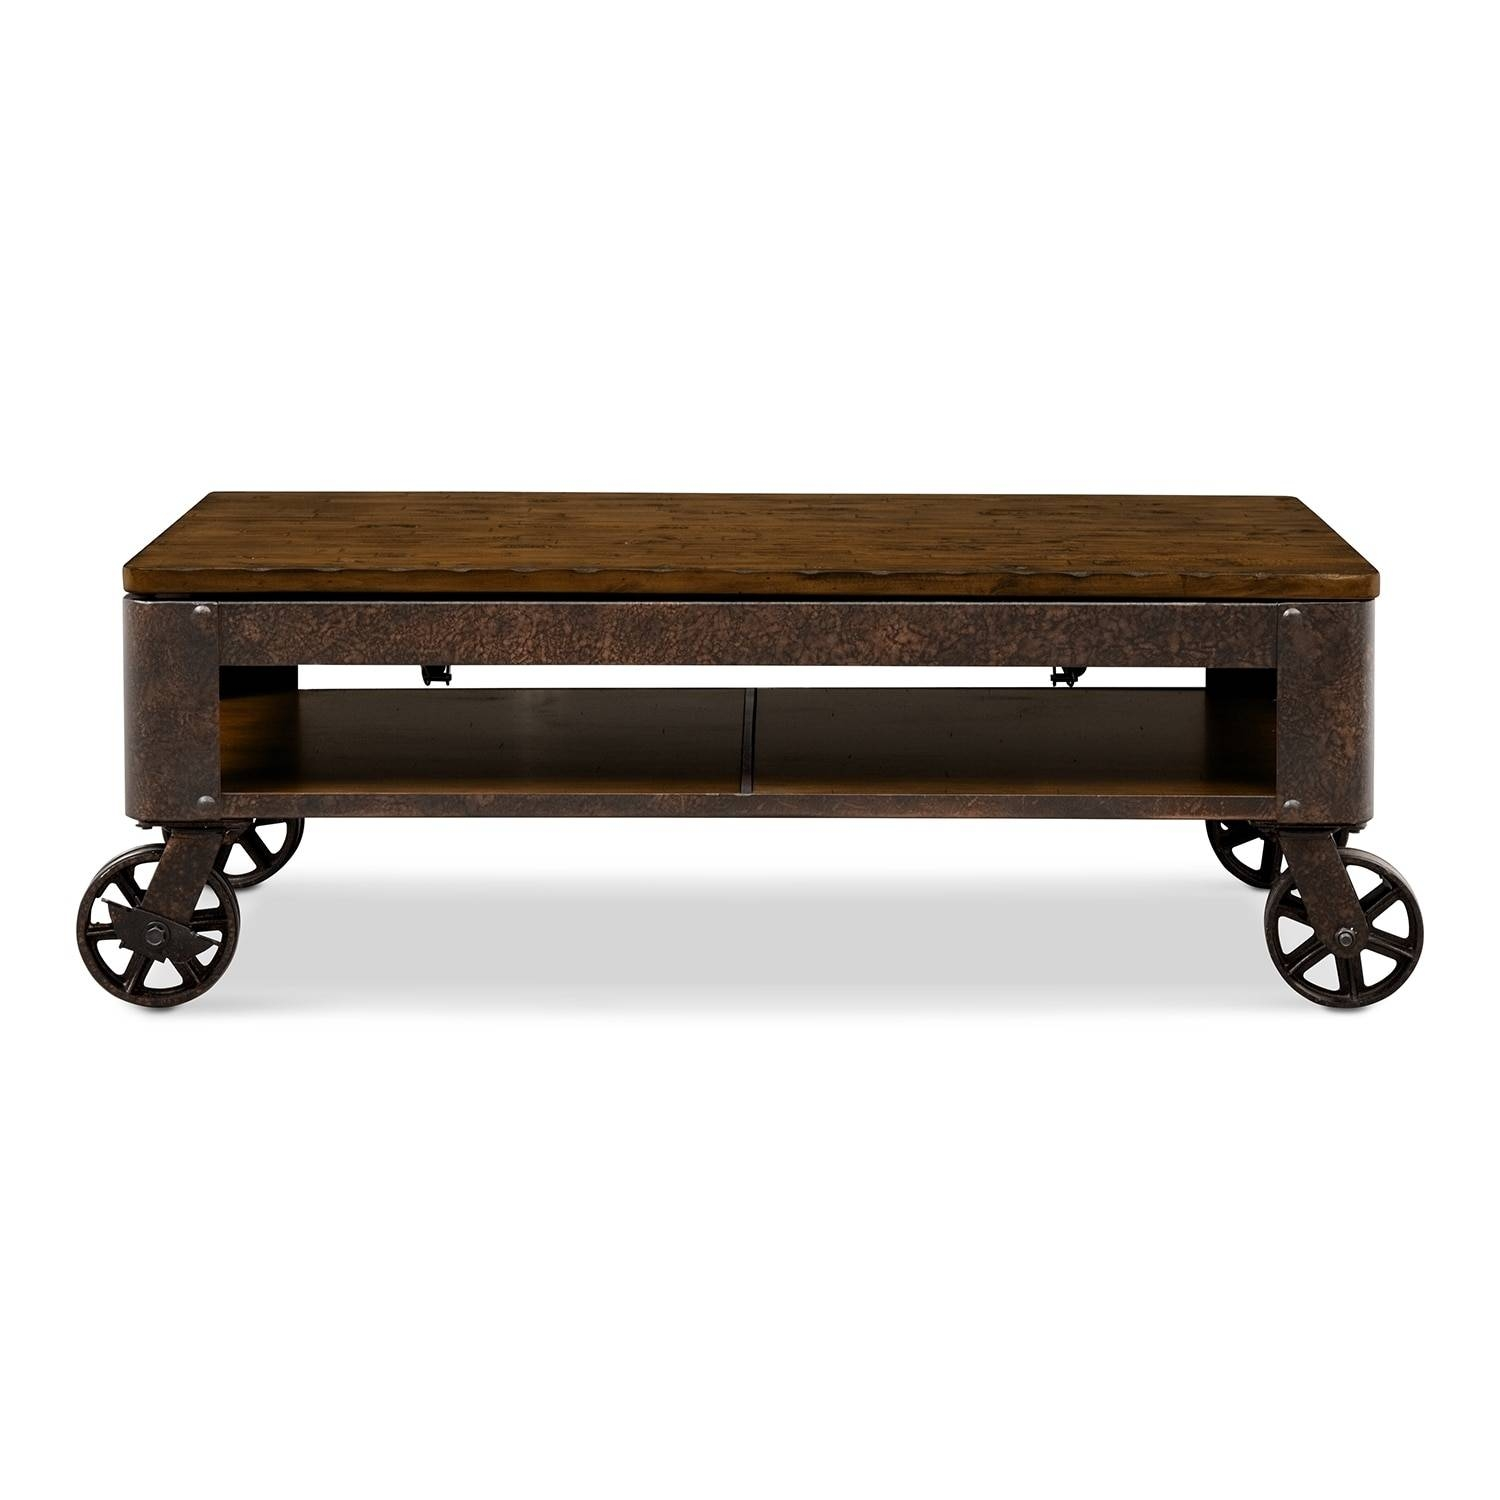 Coffee Tables | Living Room Tables | American Signature Furniture in Round Pine Coffee Tables (Image 12 of 30)